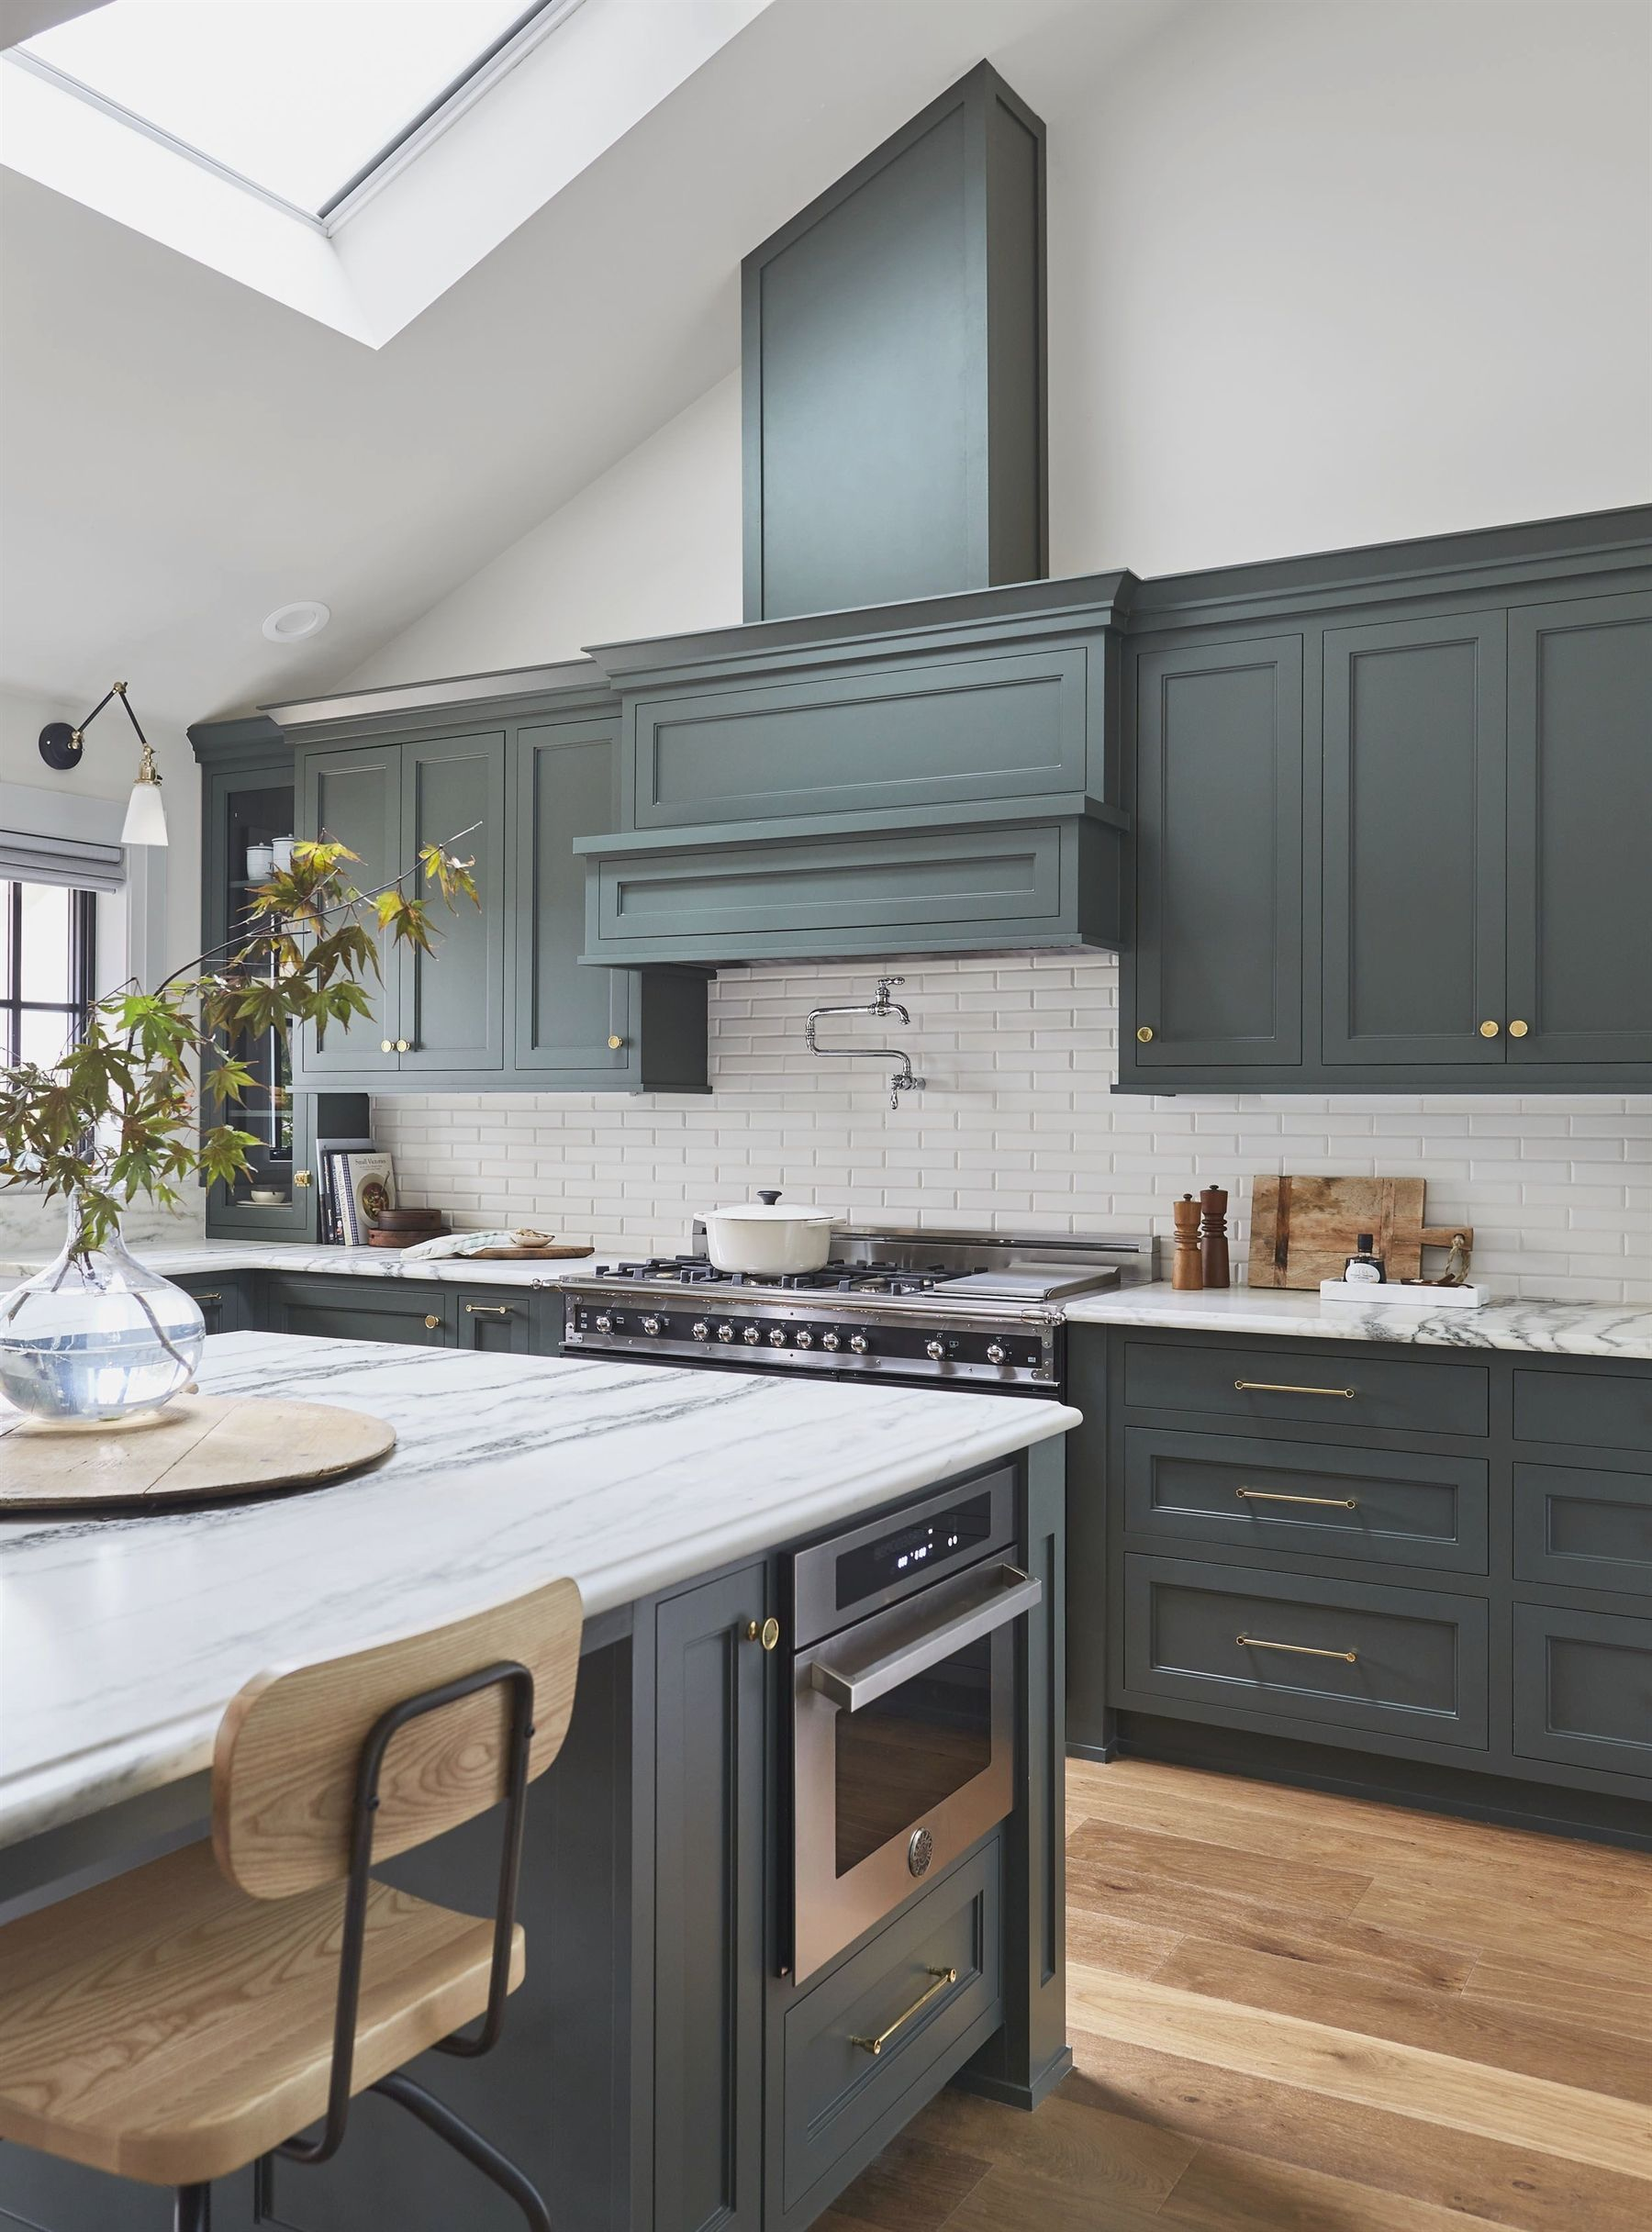 Portland kitchen reveal with dark green cabinets subway tile